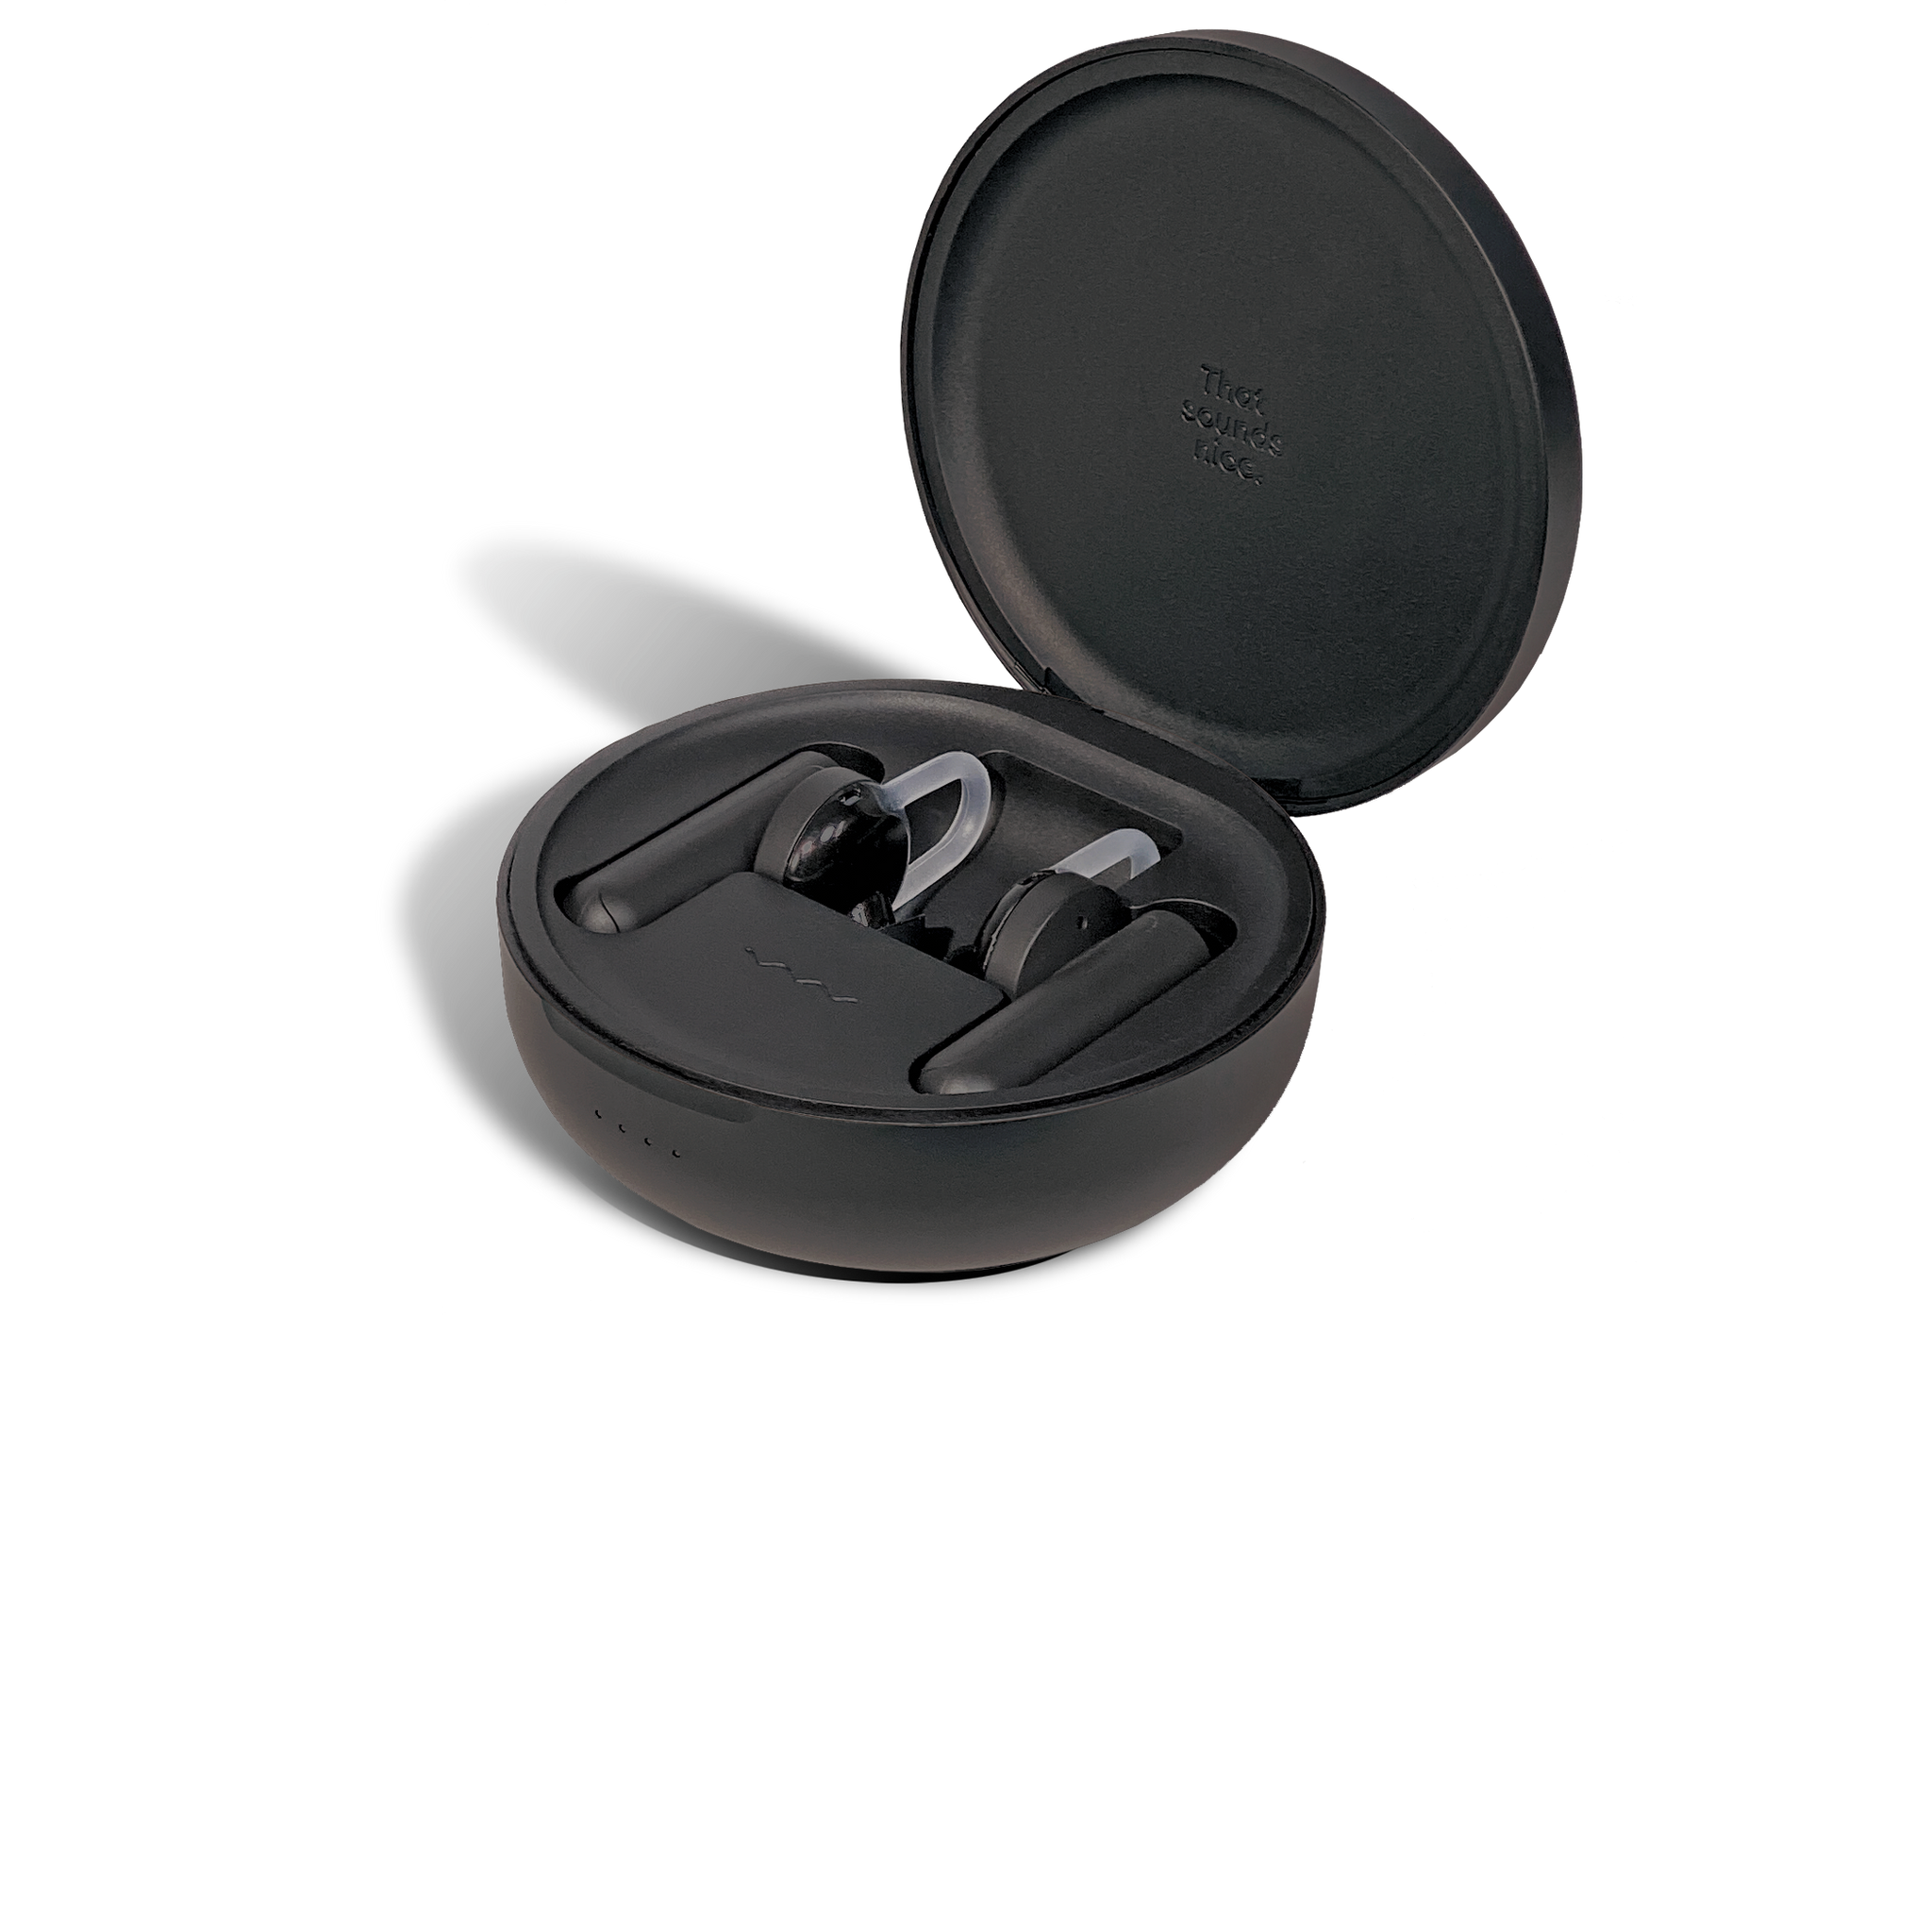 Comfy Black Truly Wireless Earbuds Case Open